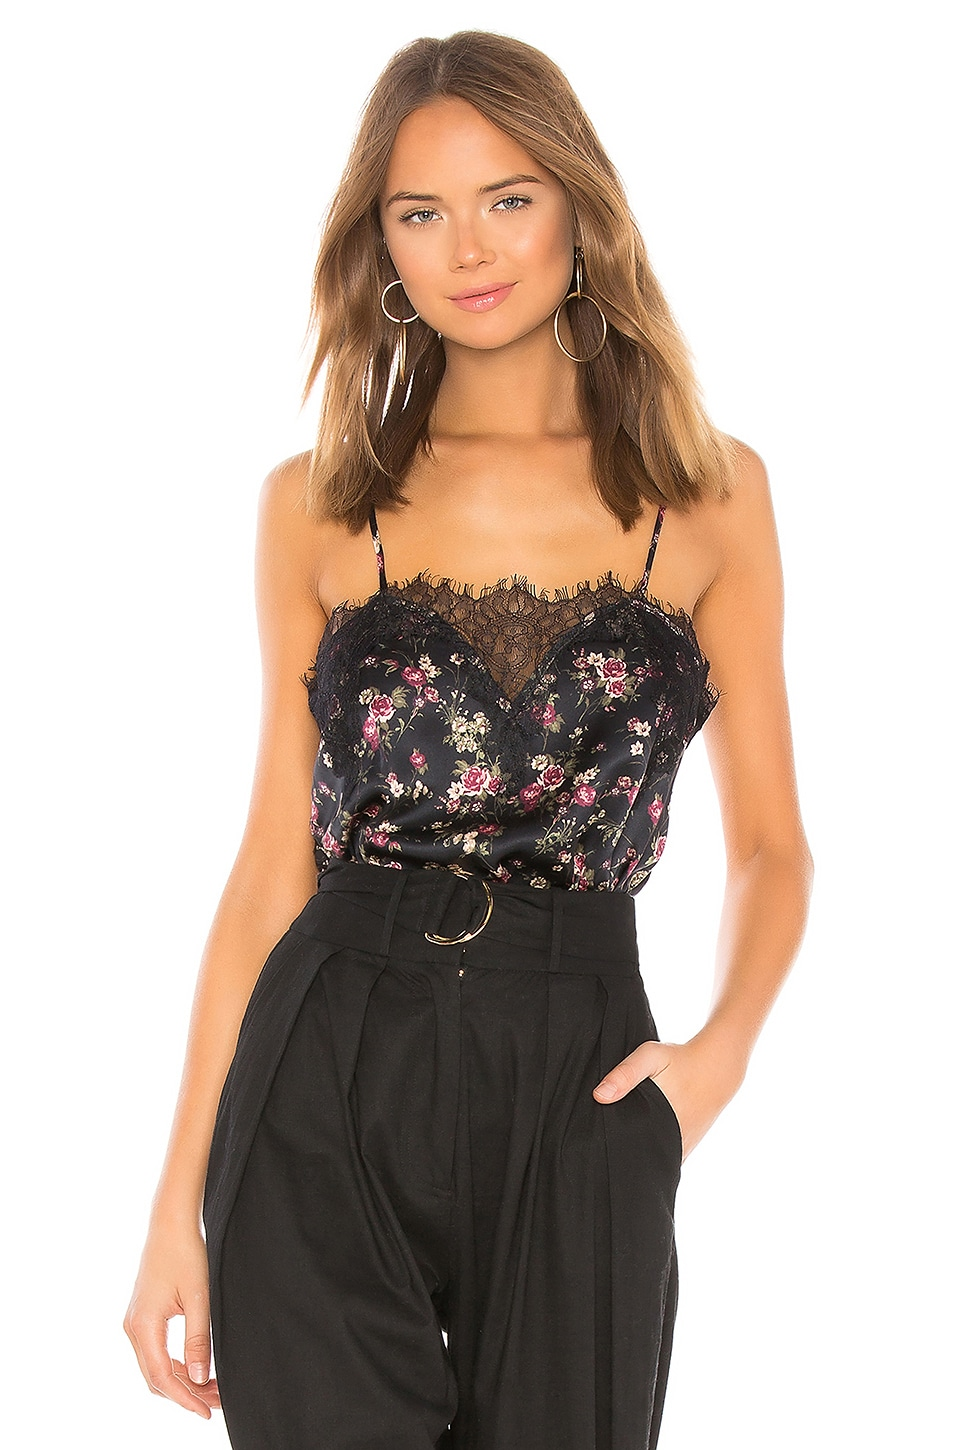 The Sweetheart Charmeuse Cami